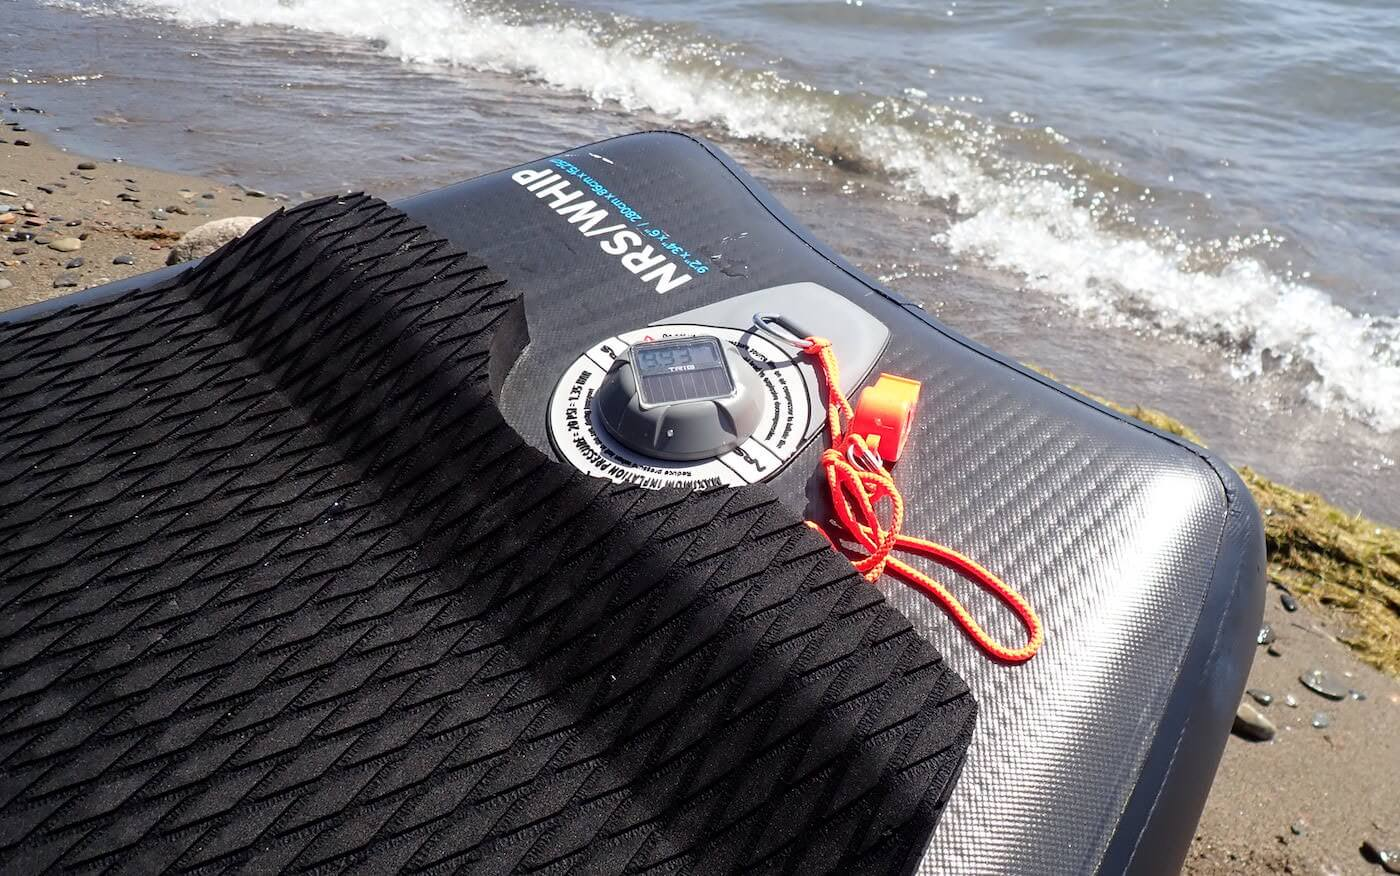 This review photo shows the TRīB airCap Pressure Gauge on an inflatable SUP paddle board on a beach.